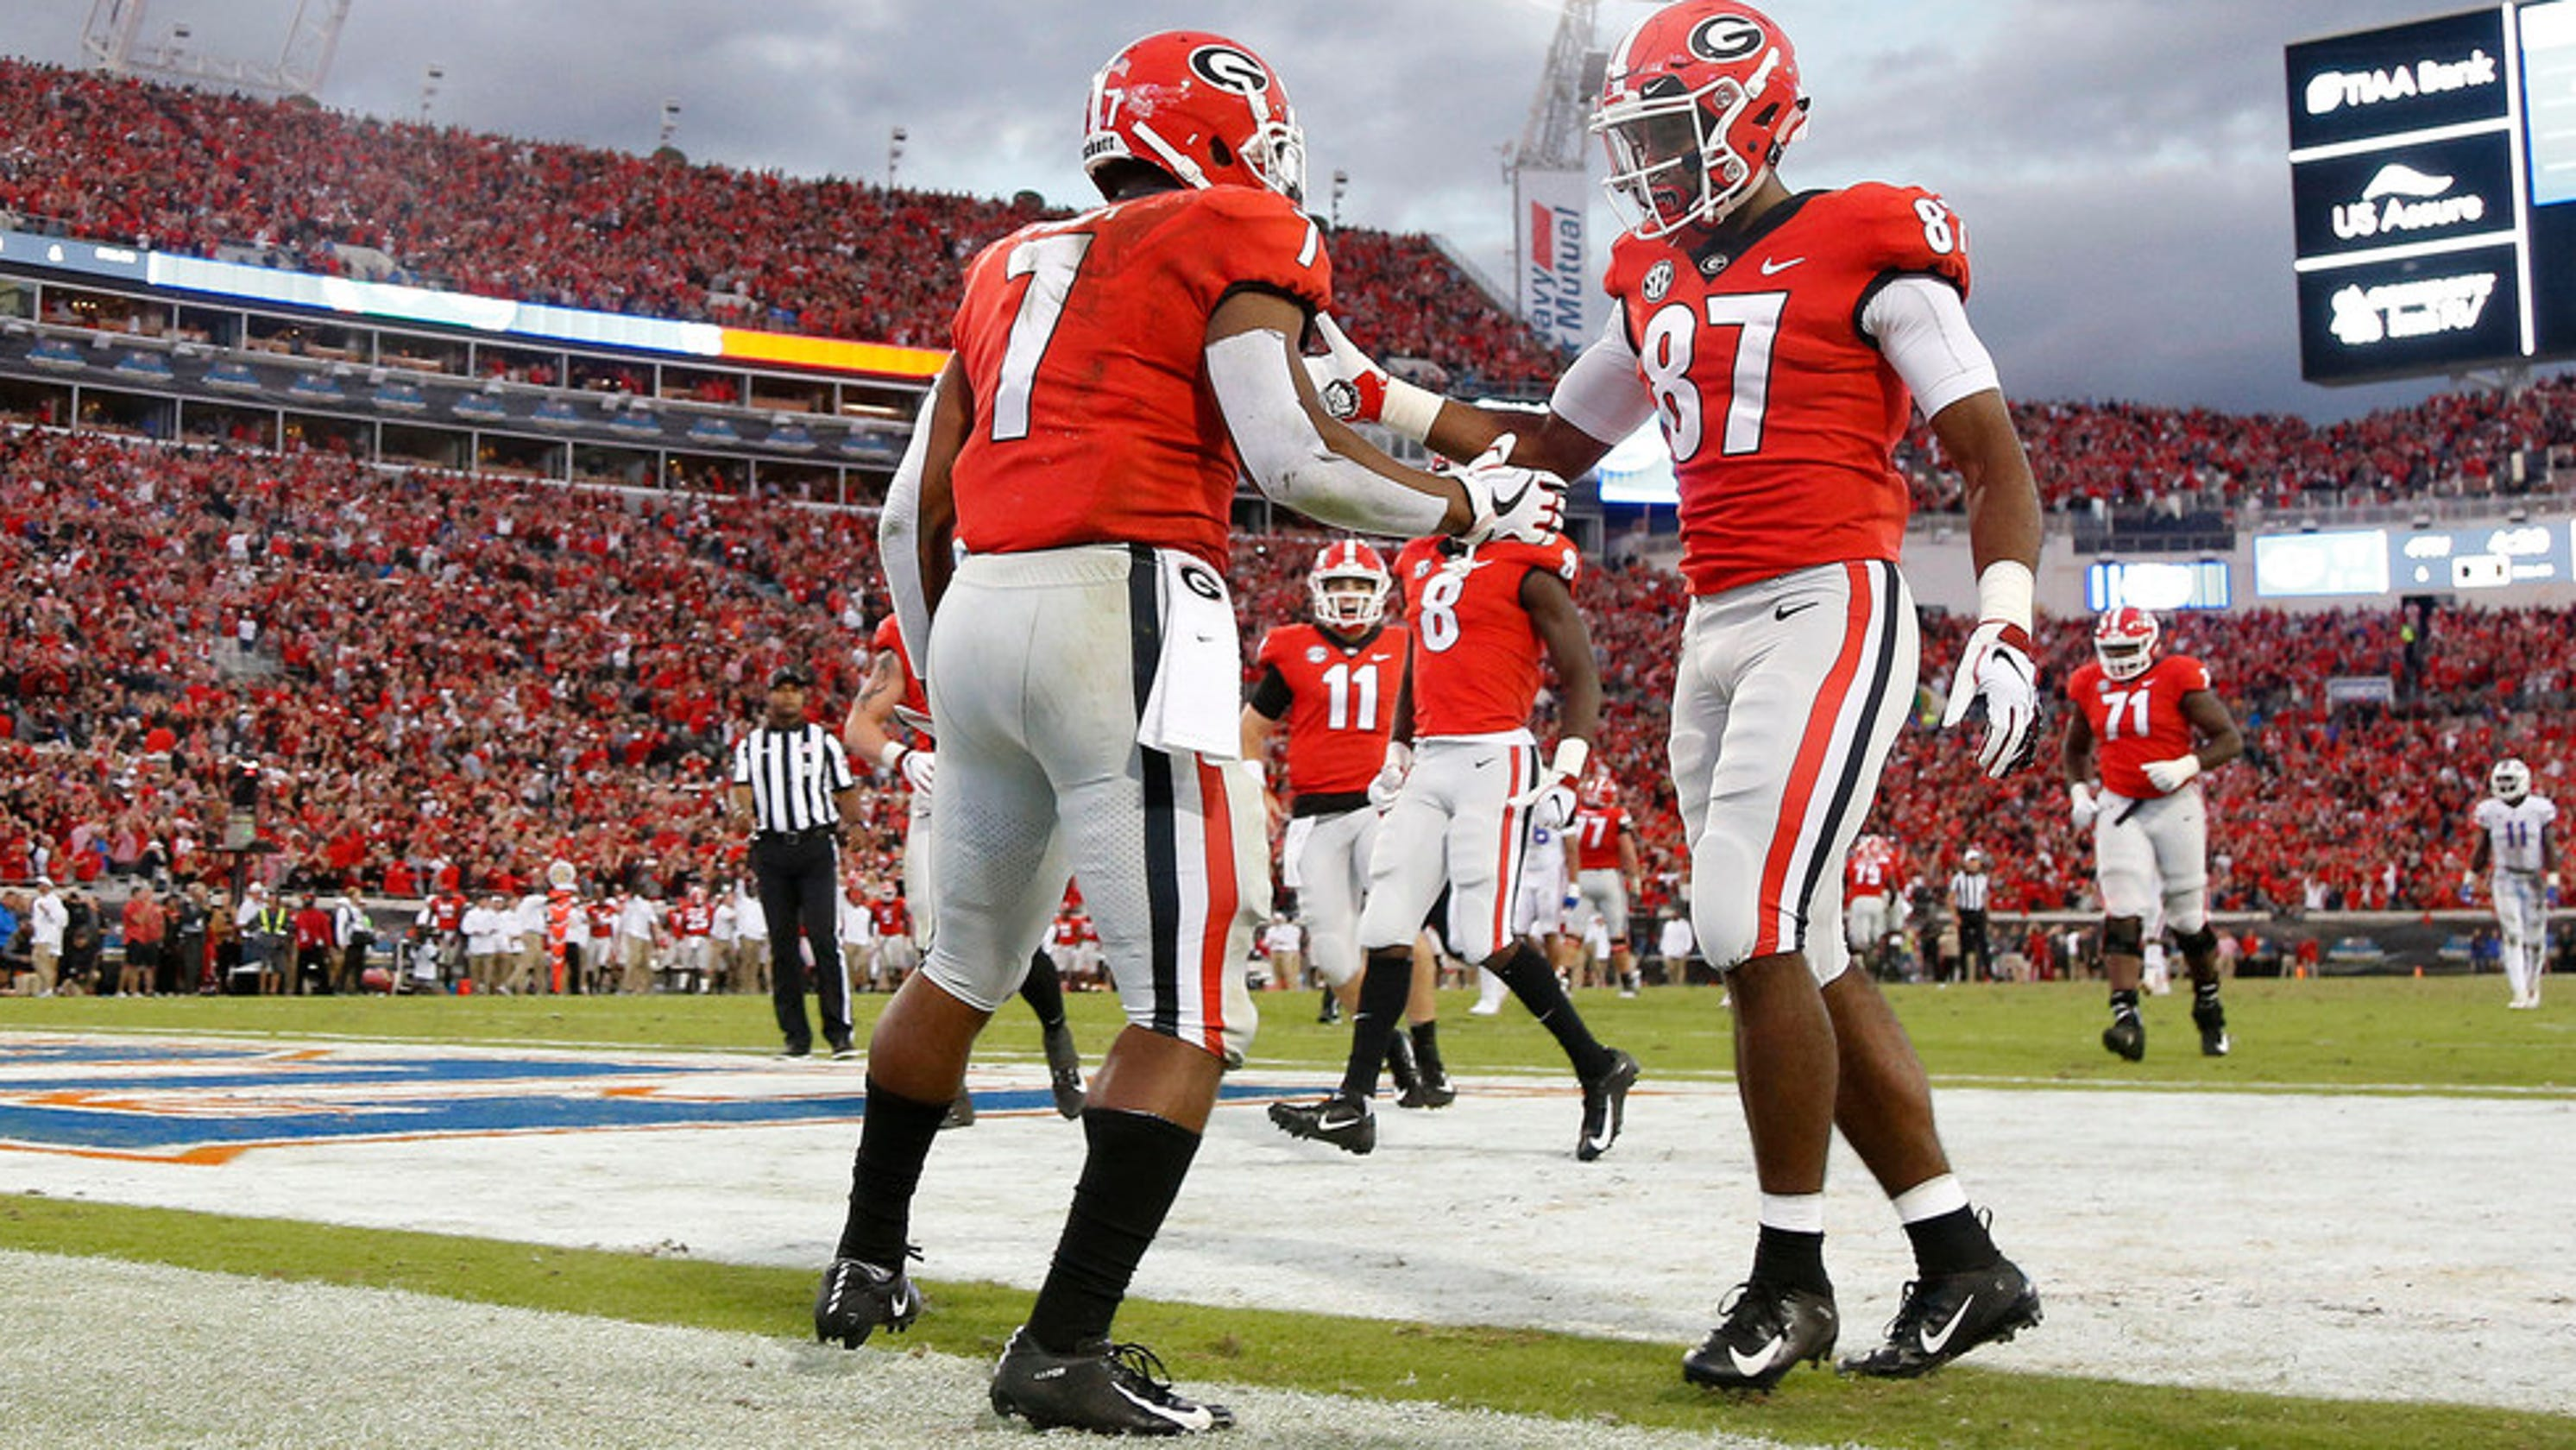 Georgia beat Florida but they're not yet College Football